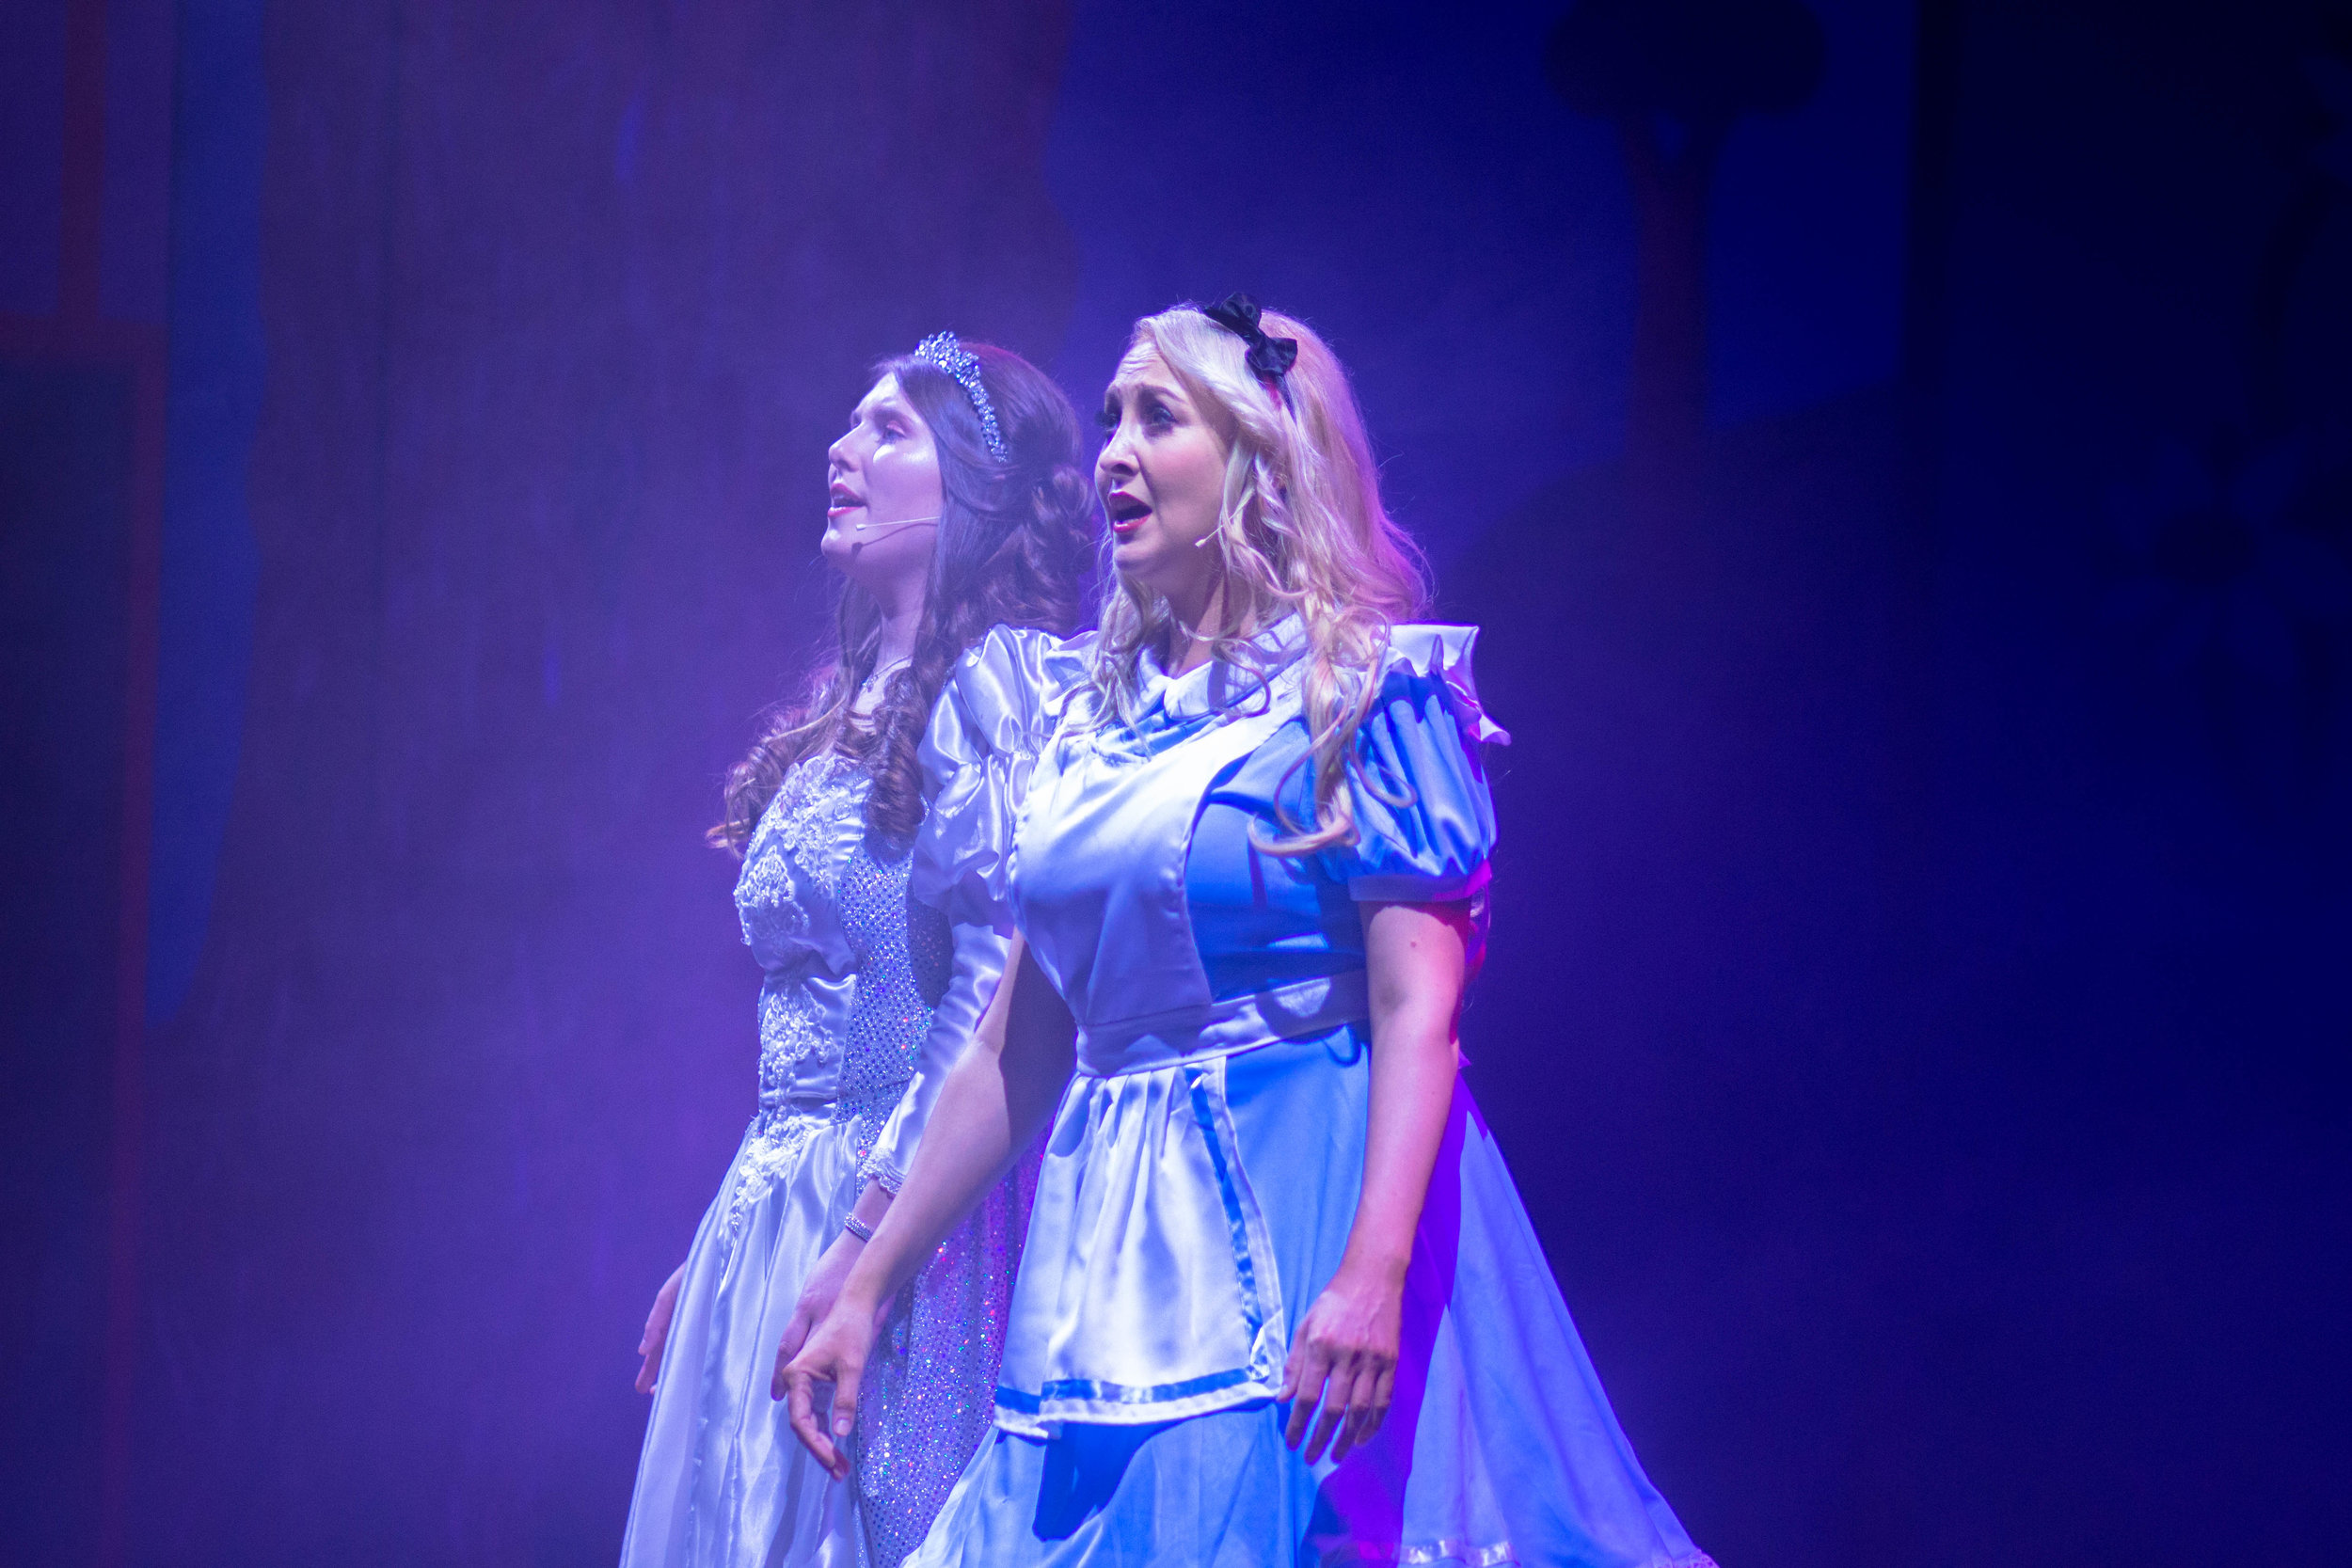 Alice_In_Wonderland_Panto-8508.jpg